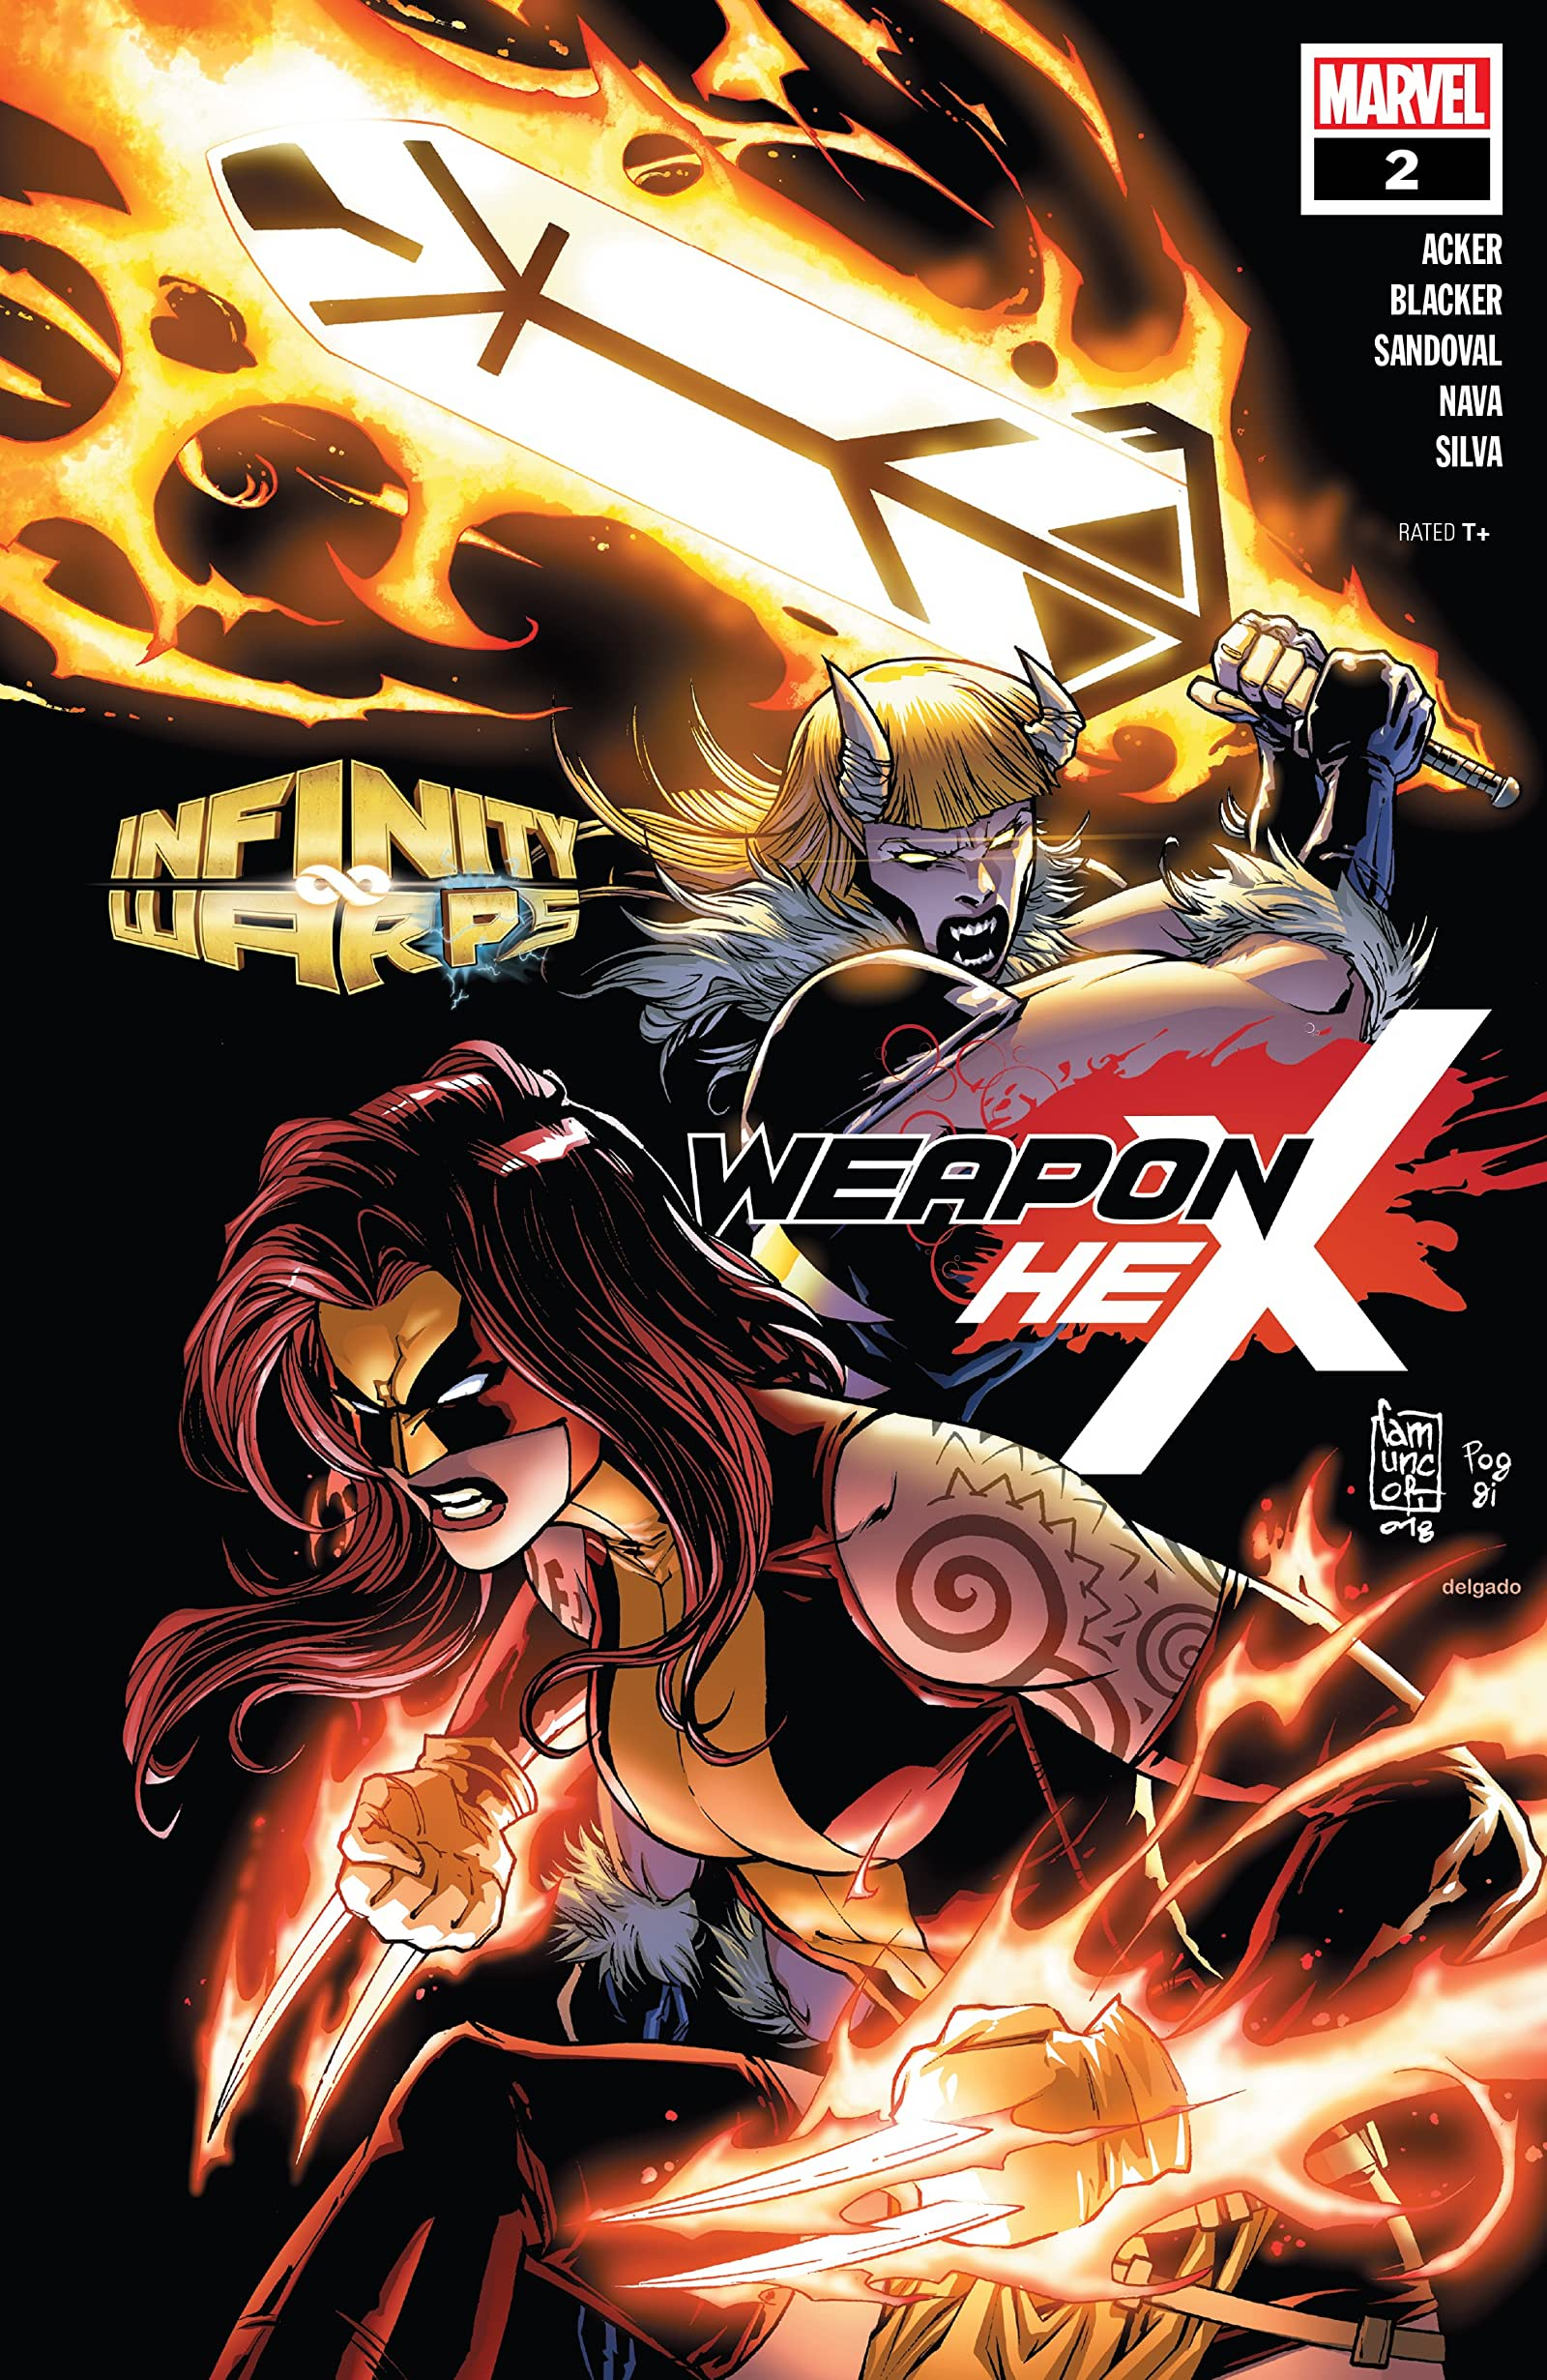 Infinity Wars: Weapon Hex (2018) #2 (of 2) - Comics by comiXology